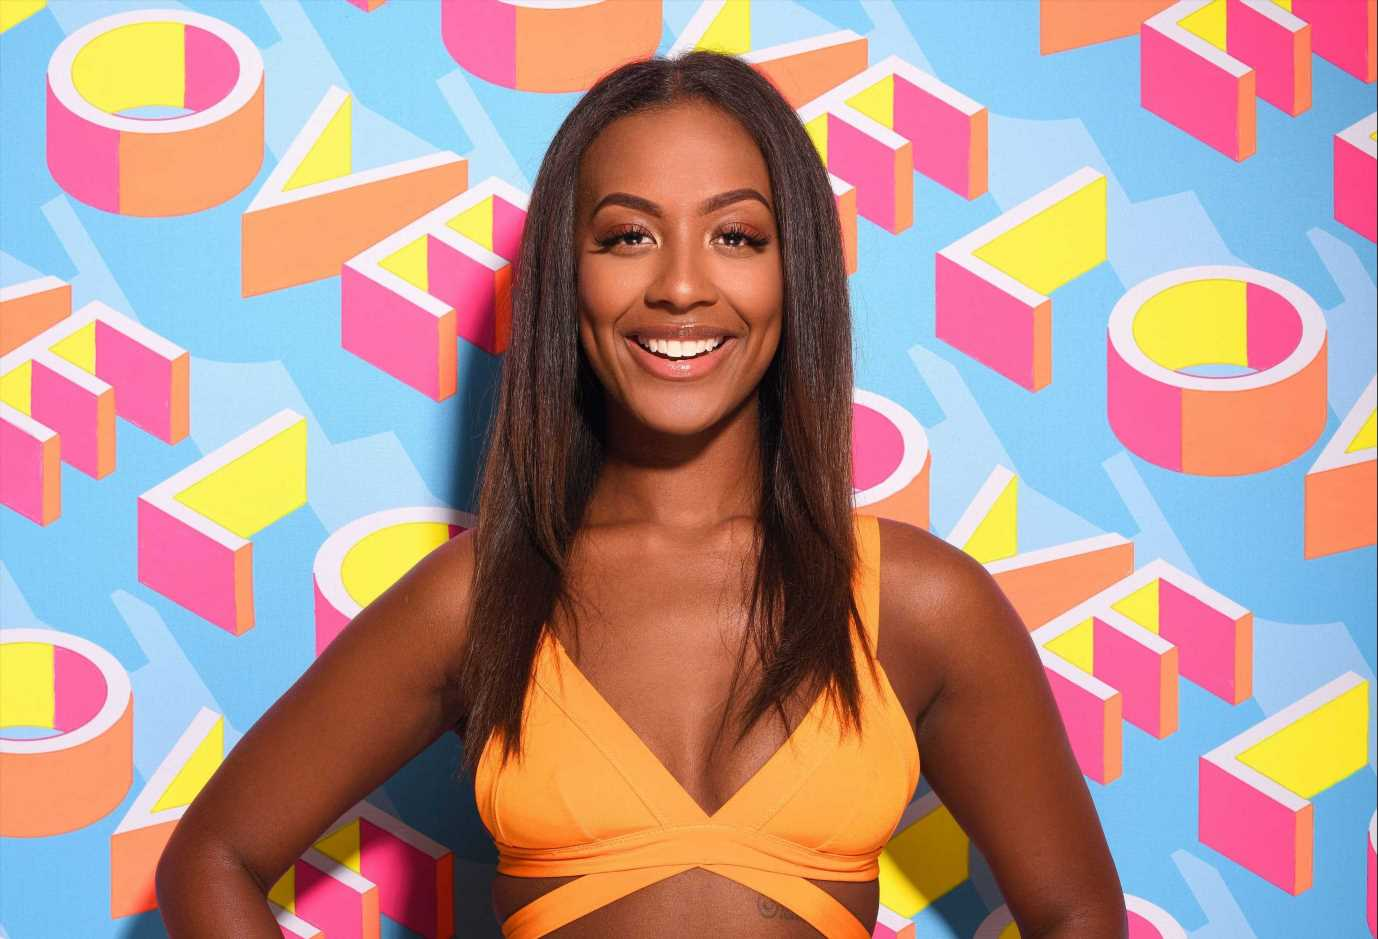 Who is Lavena Back? Love Island 2019 contestant and business developer from Croydon